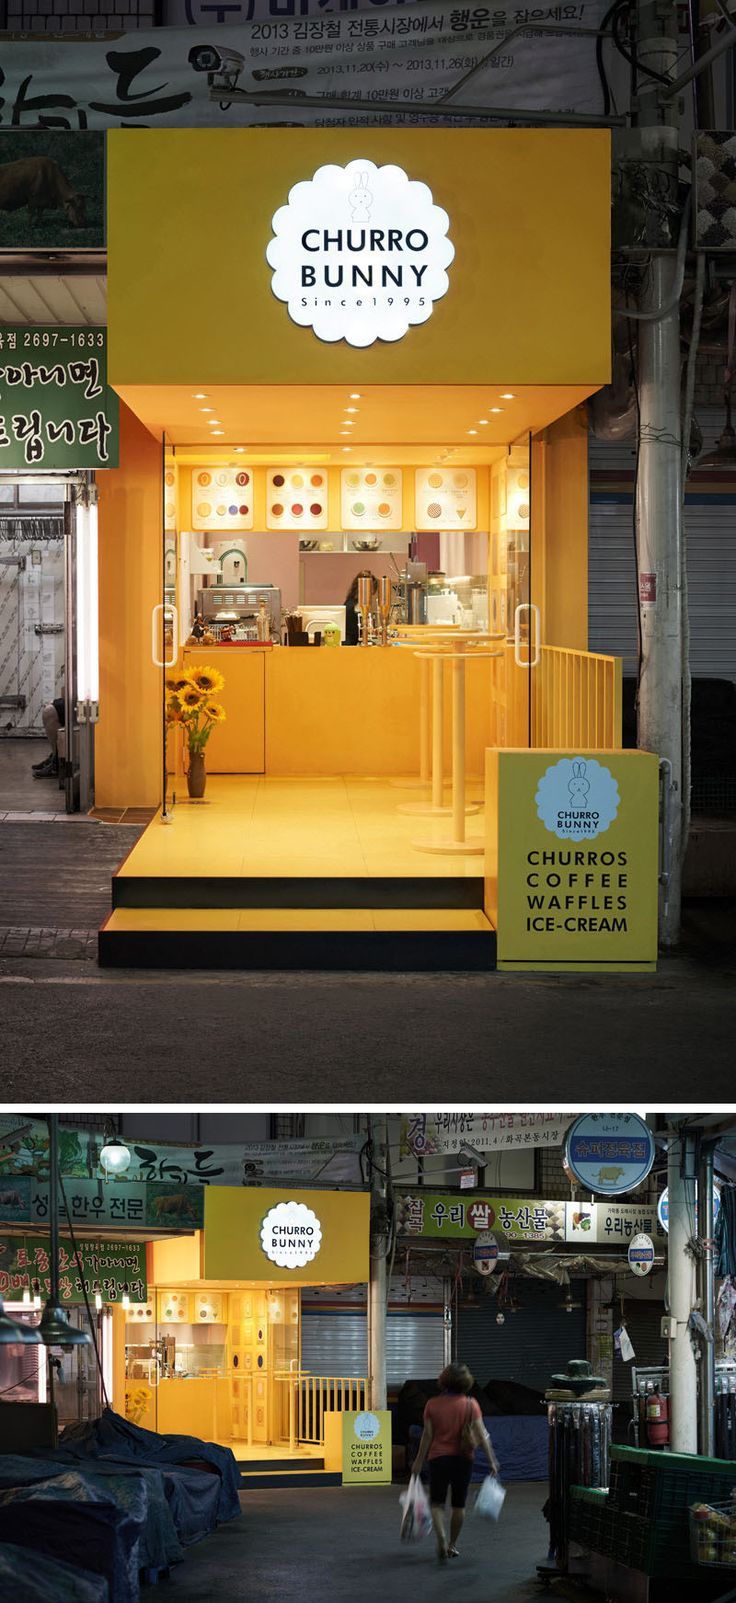 10 Unique Coffee Shop Designs In Asia | Design studio M4 designed Churro Bunny, a bright and inviting takeaway cafe in Seoul, South Korea that stands out from the rest of the buildings on the street and adds a whimsical pop of yellow to the block.